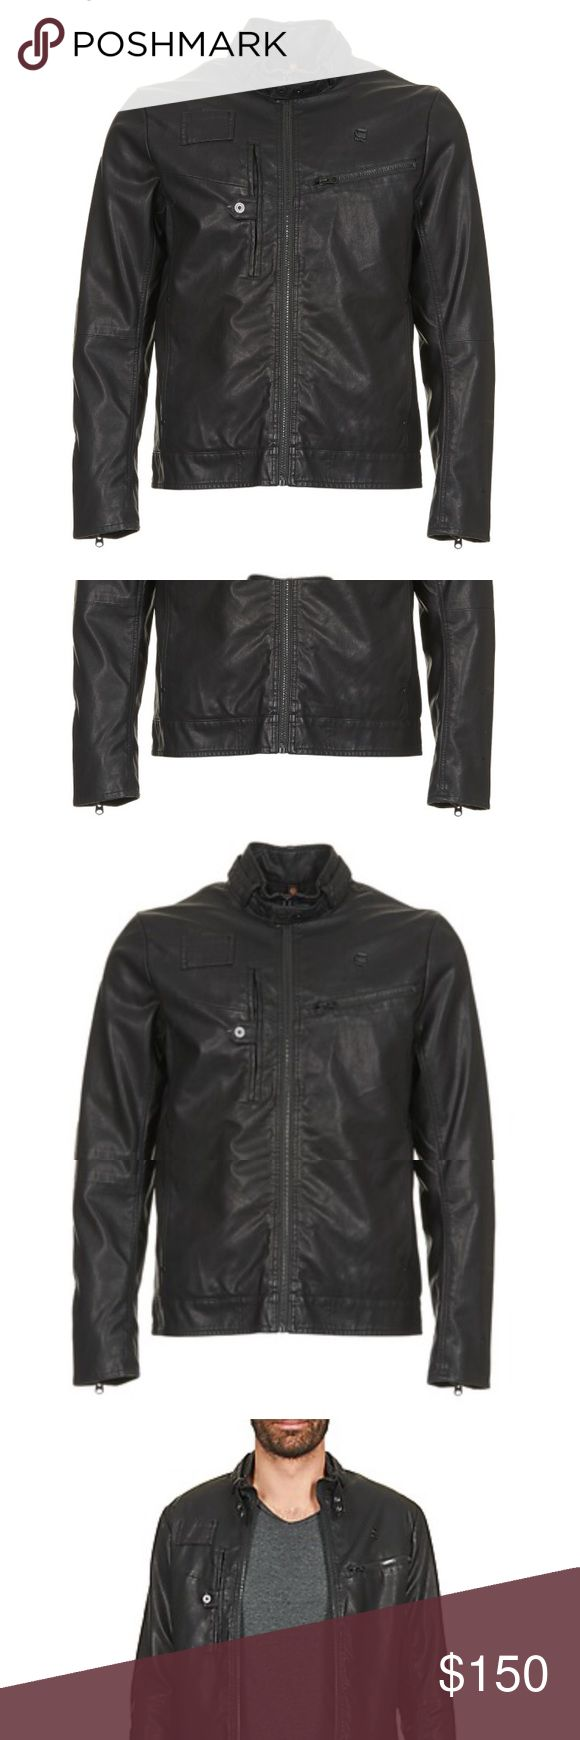 GStar Raw Black Biker Jacket Brand New $415  G Star Raw Hamzer Biker Black Jacket  Size XL  Trendsetters will love this magnificent jacket from G-Star Raw. Made of viscose (85%) and polyester (15%) , the black colour is a great touch. A great design that fans of beautiful leathers will love!  Information :Closure  Zip fastening  Composition:  Viscose : 85%  Polyester : 15% G Star Raw Jackets & Coats